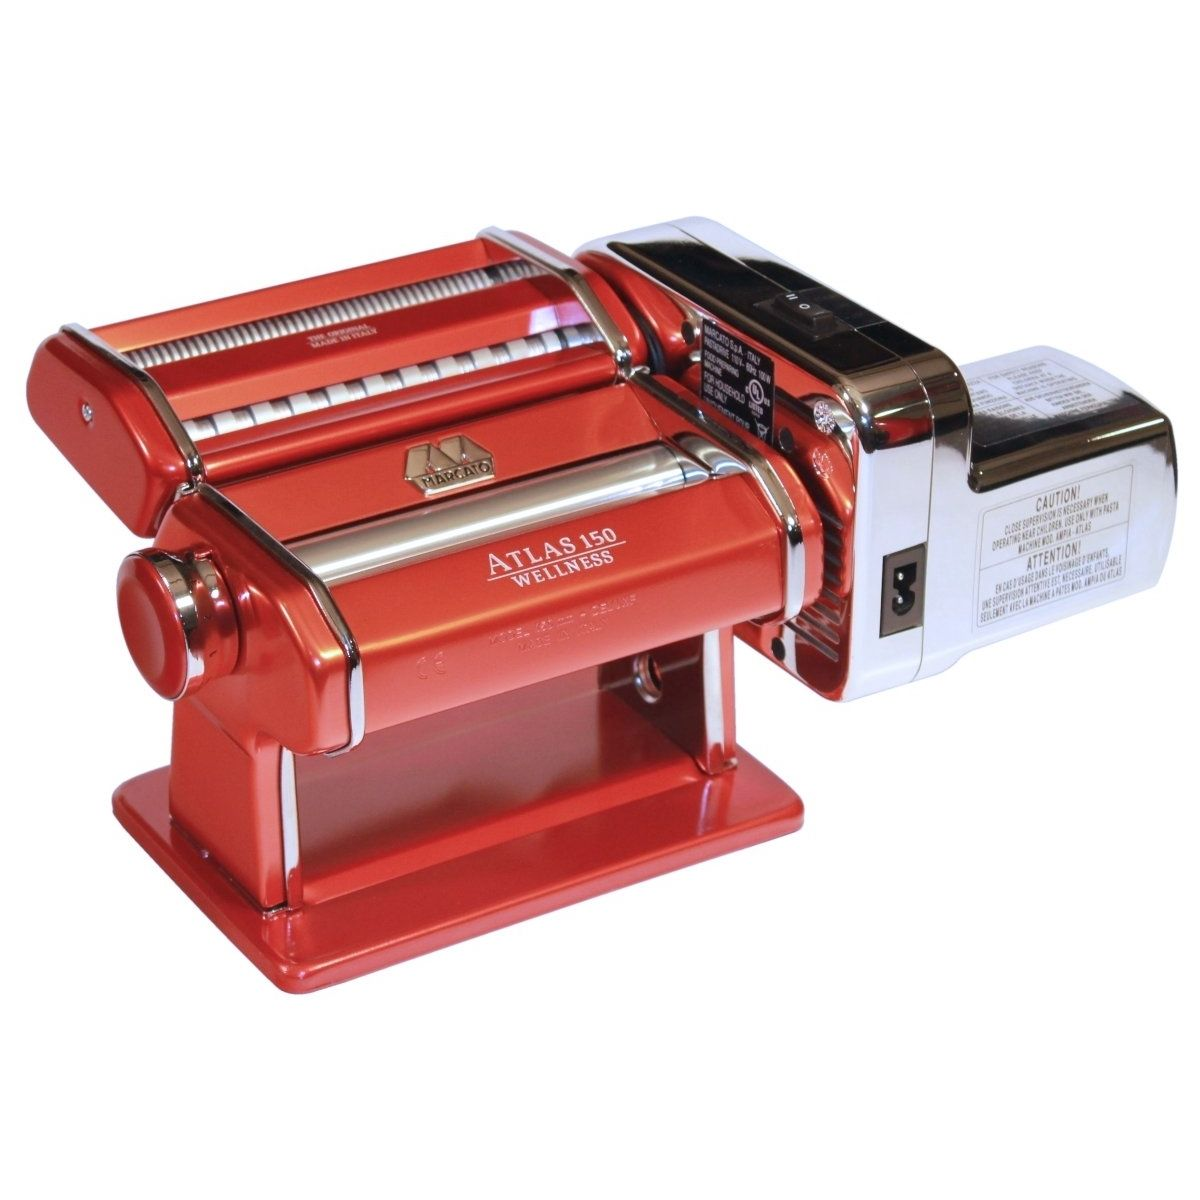 marcato atlas pasta machine motor